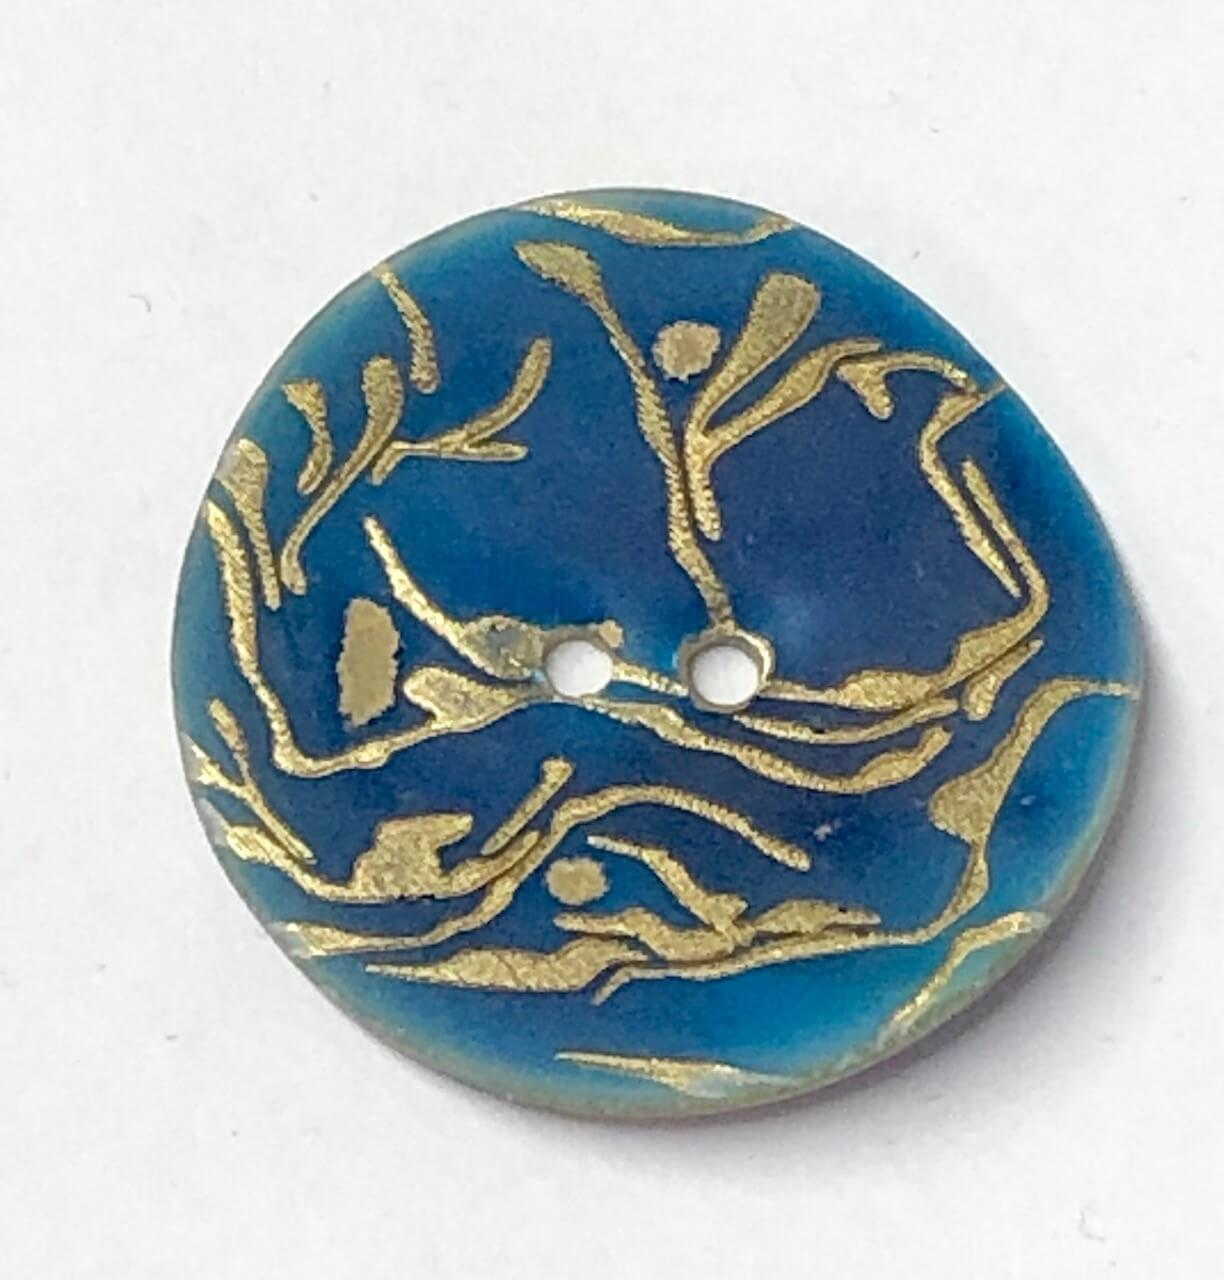 34mm Gold Scroll on Blue Sea Shell Round Button Italian Design